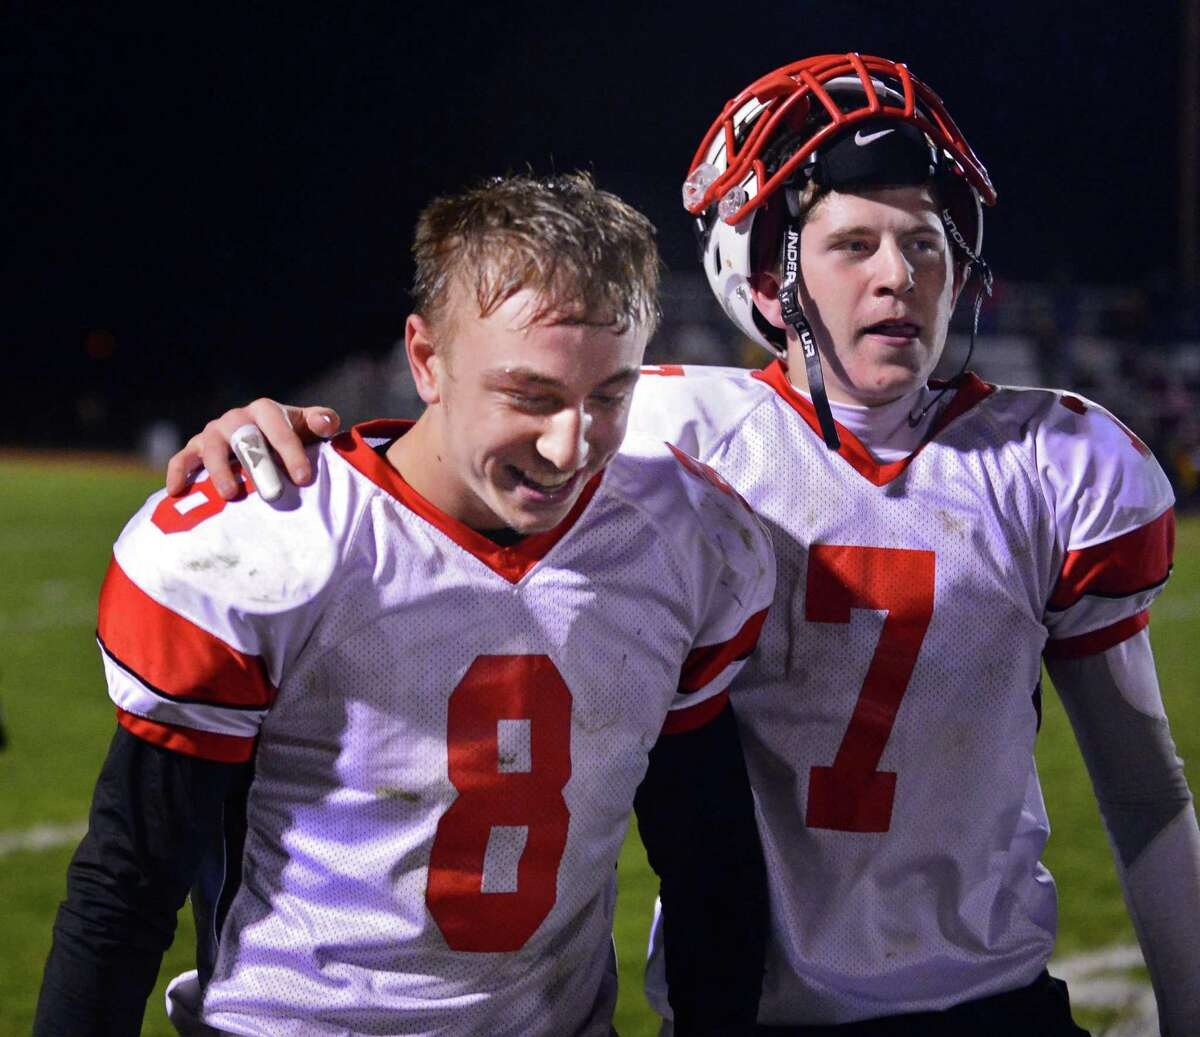 Guilderland's #8 Andrew Sentz, left, is congradulated by QB #7 Frank Gallo after Sentz kicked a final second field goal to win their Class AA quarterfinal football game against Colonie Friday Oct. 24, 2013, in Colonie, NY. (John Carl D'Annibale / Times Union)